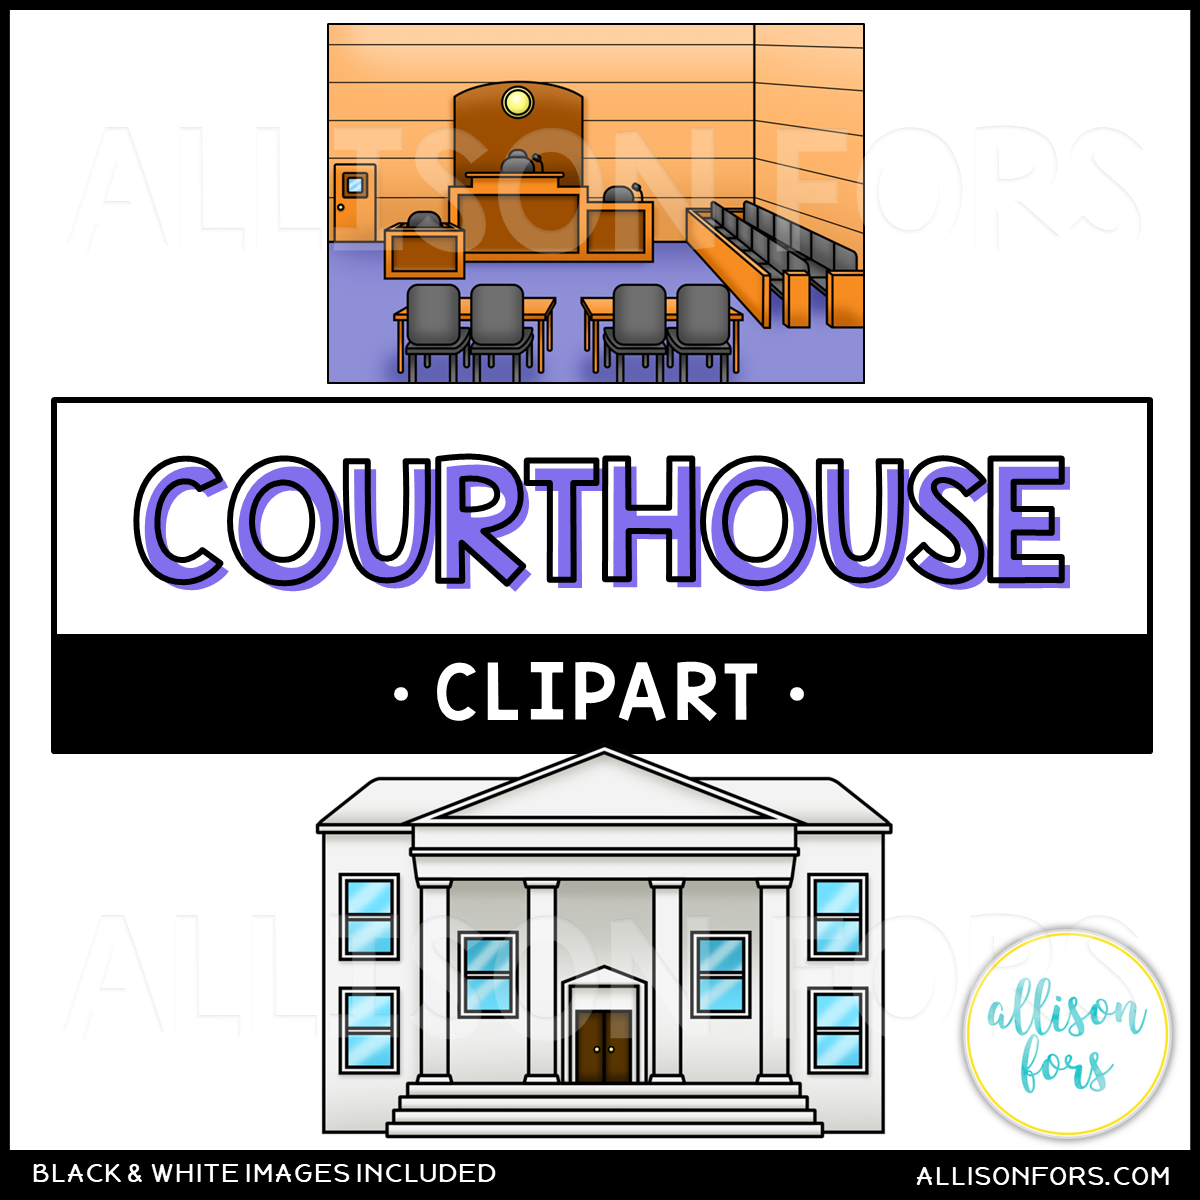 Courthouse clipart courtroom. Clip art